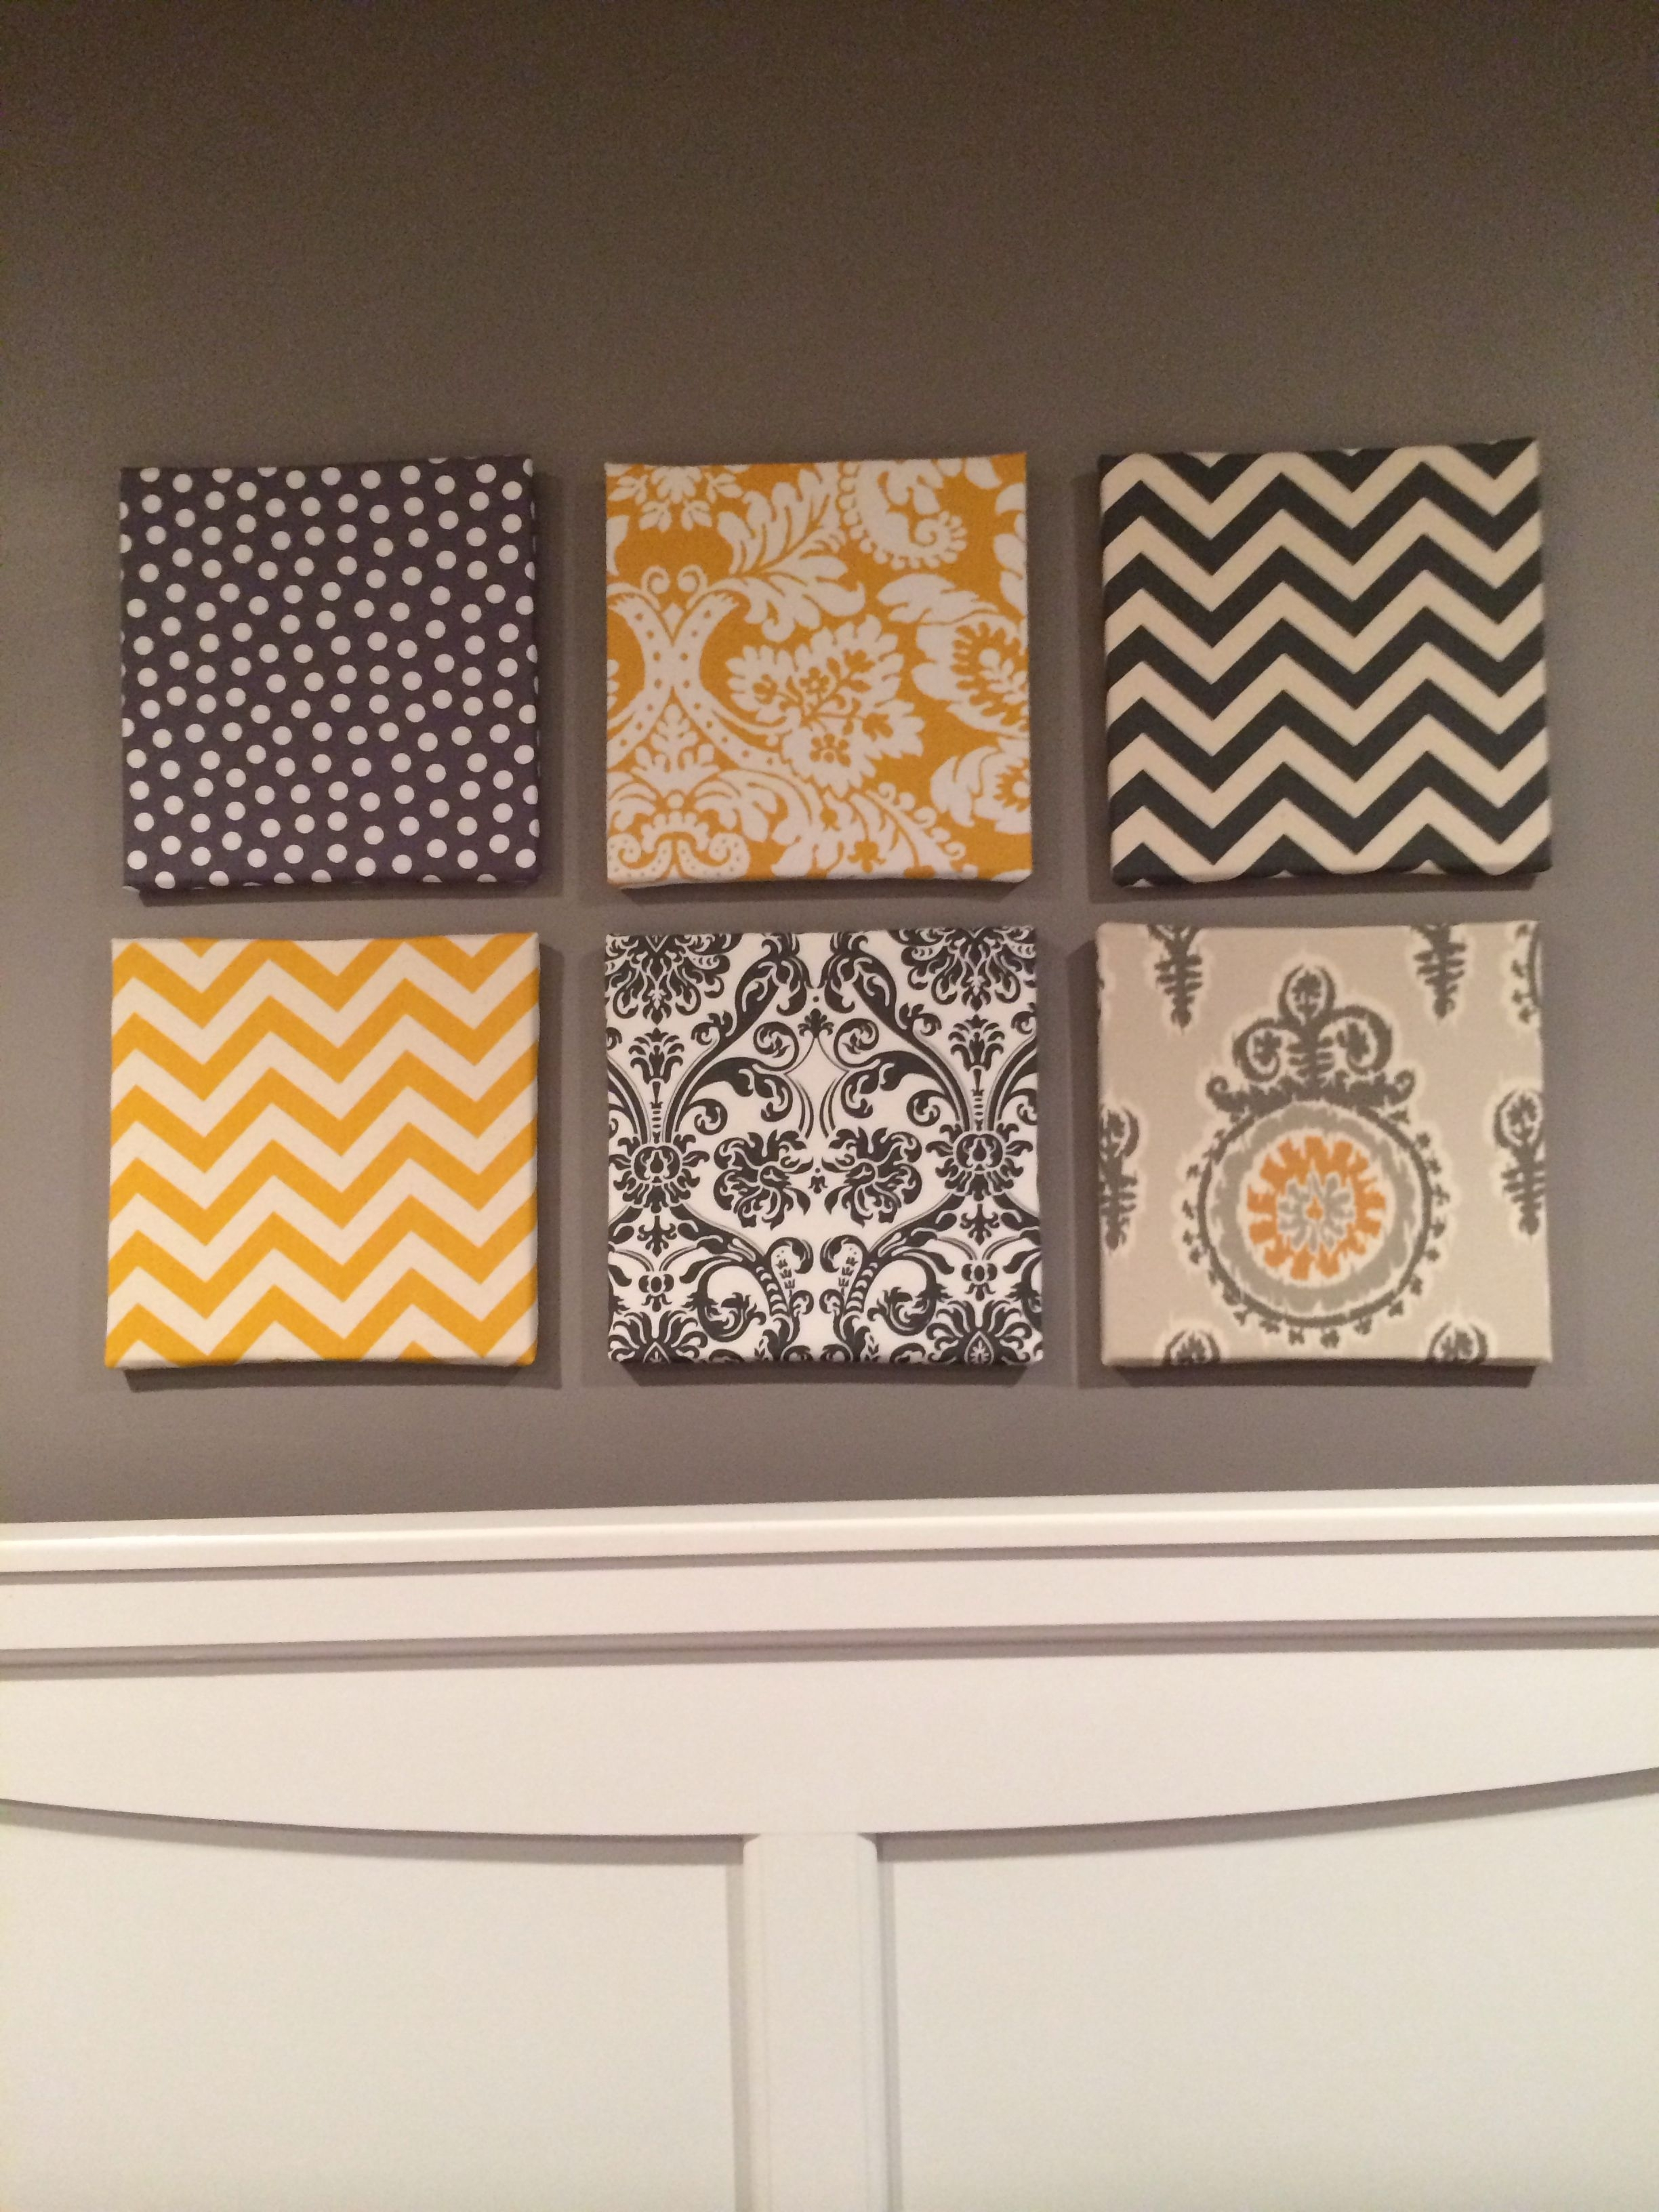 My Fabric Over Canvas Wall Art For My Gray And Yellow Themed Room Pertaining To Recent Canvas Wall Art With Fabric (View 11 of 15)